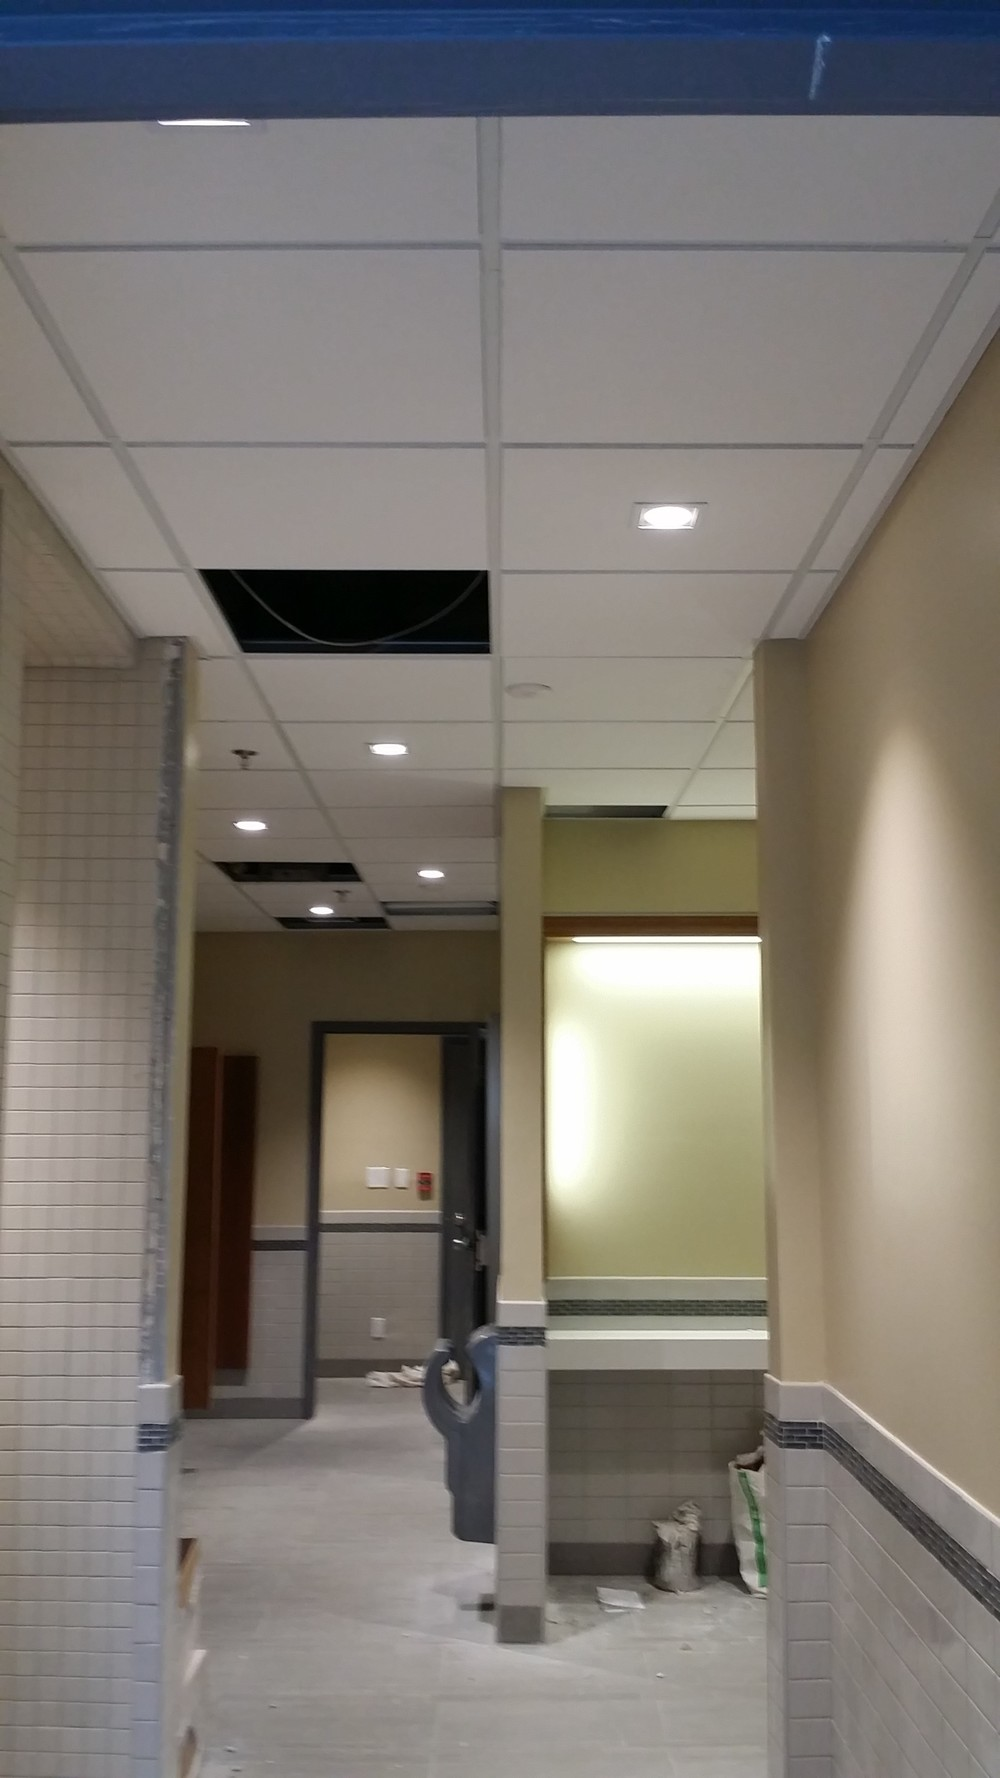 Complete - Ceiling & Electrical